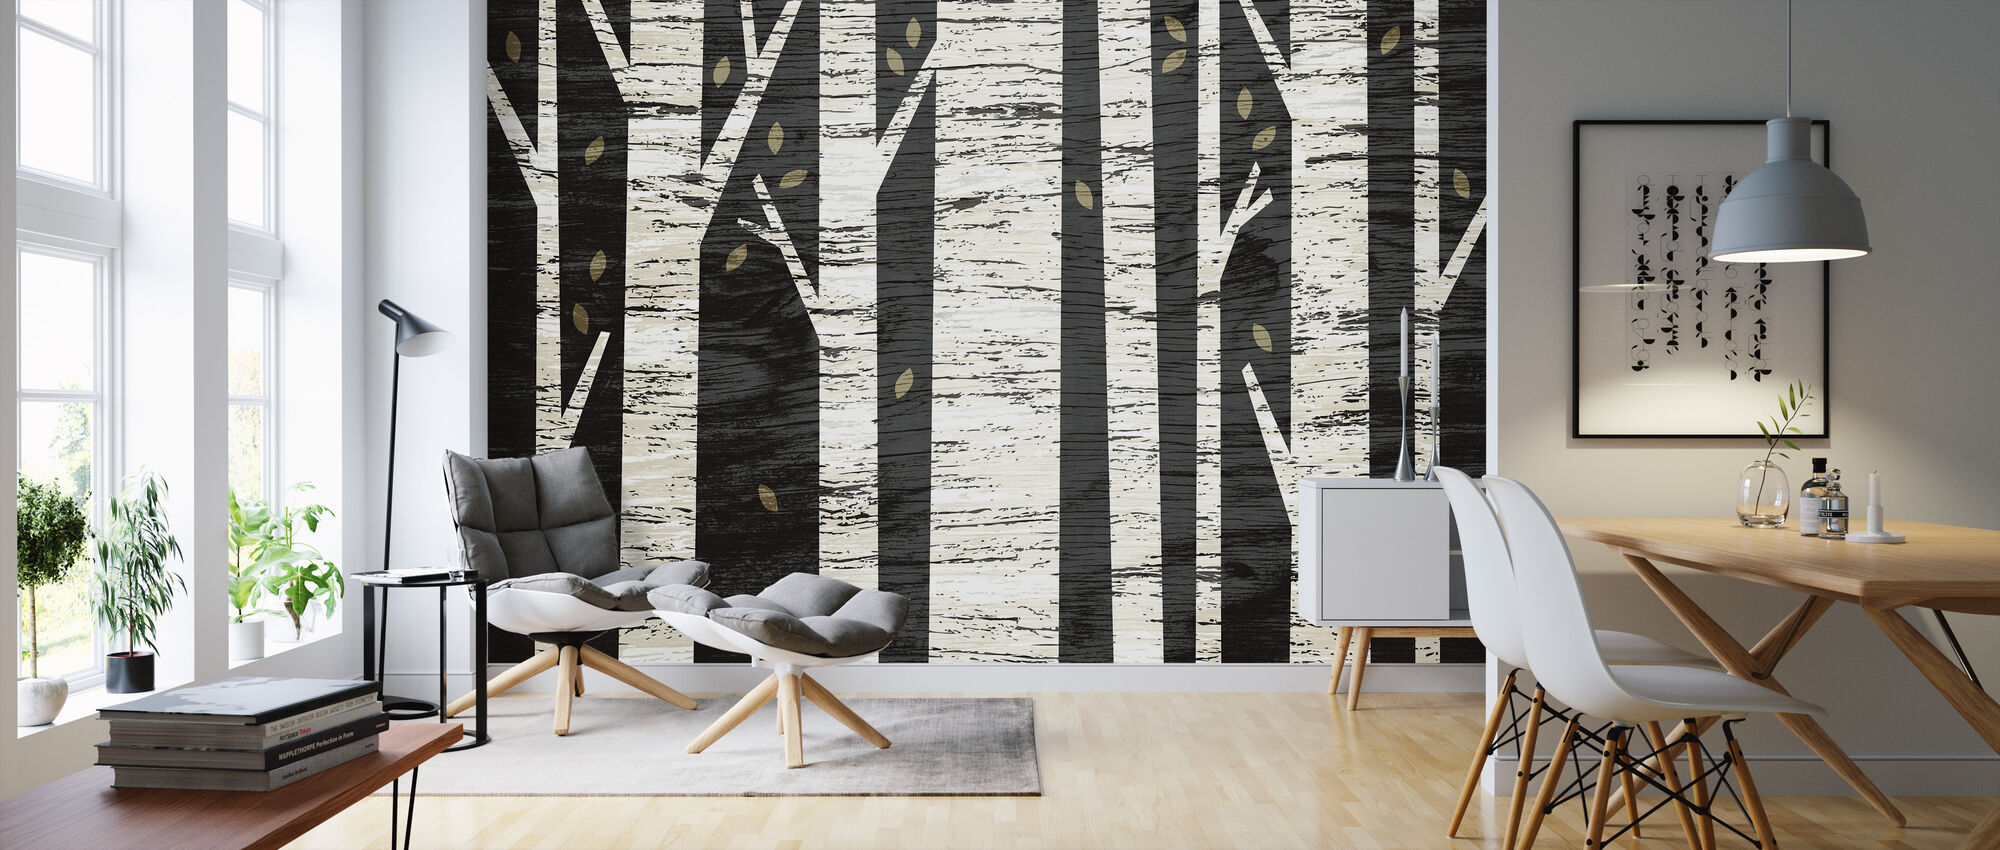 Graphic Birch Forest - Wallpaper - Living Room